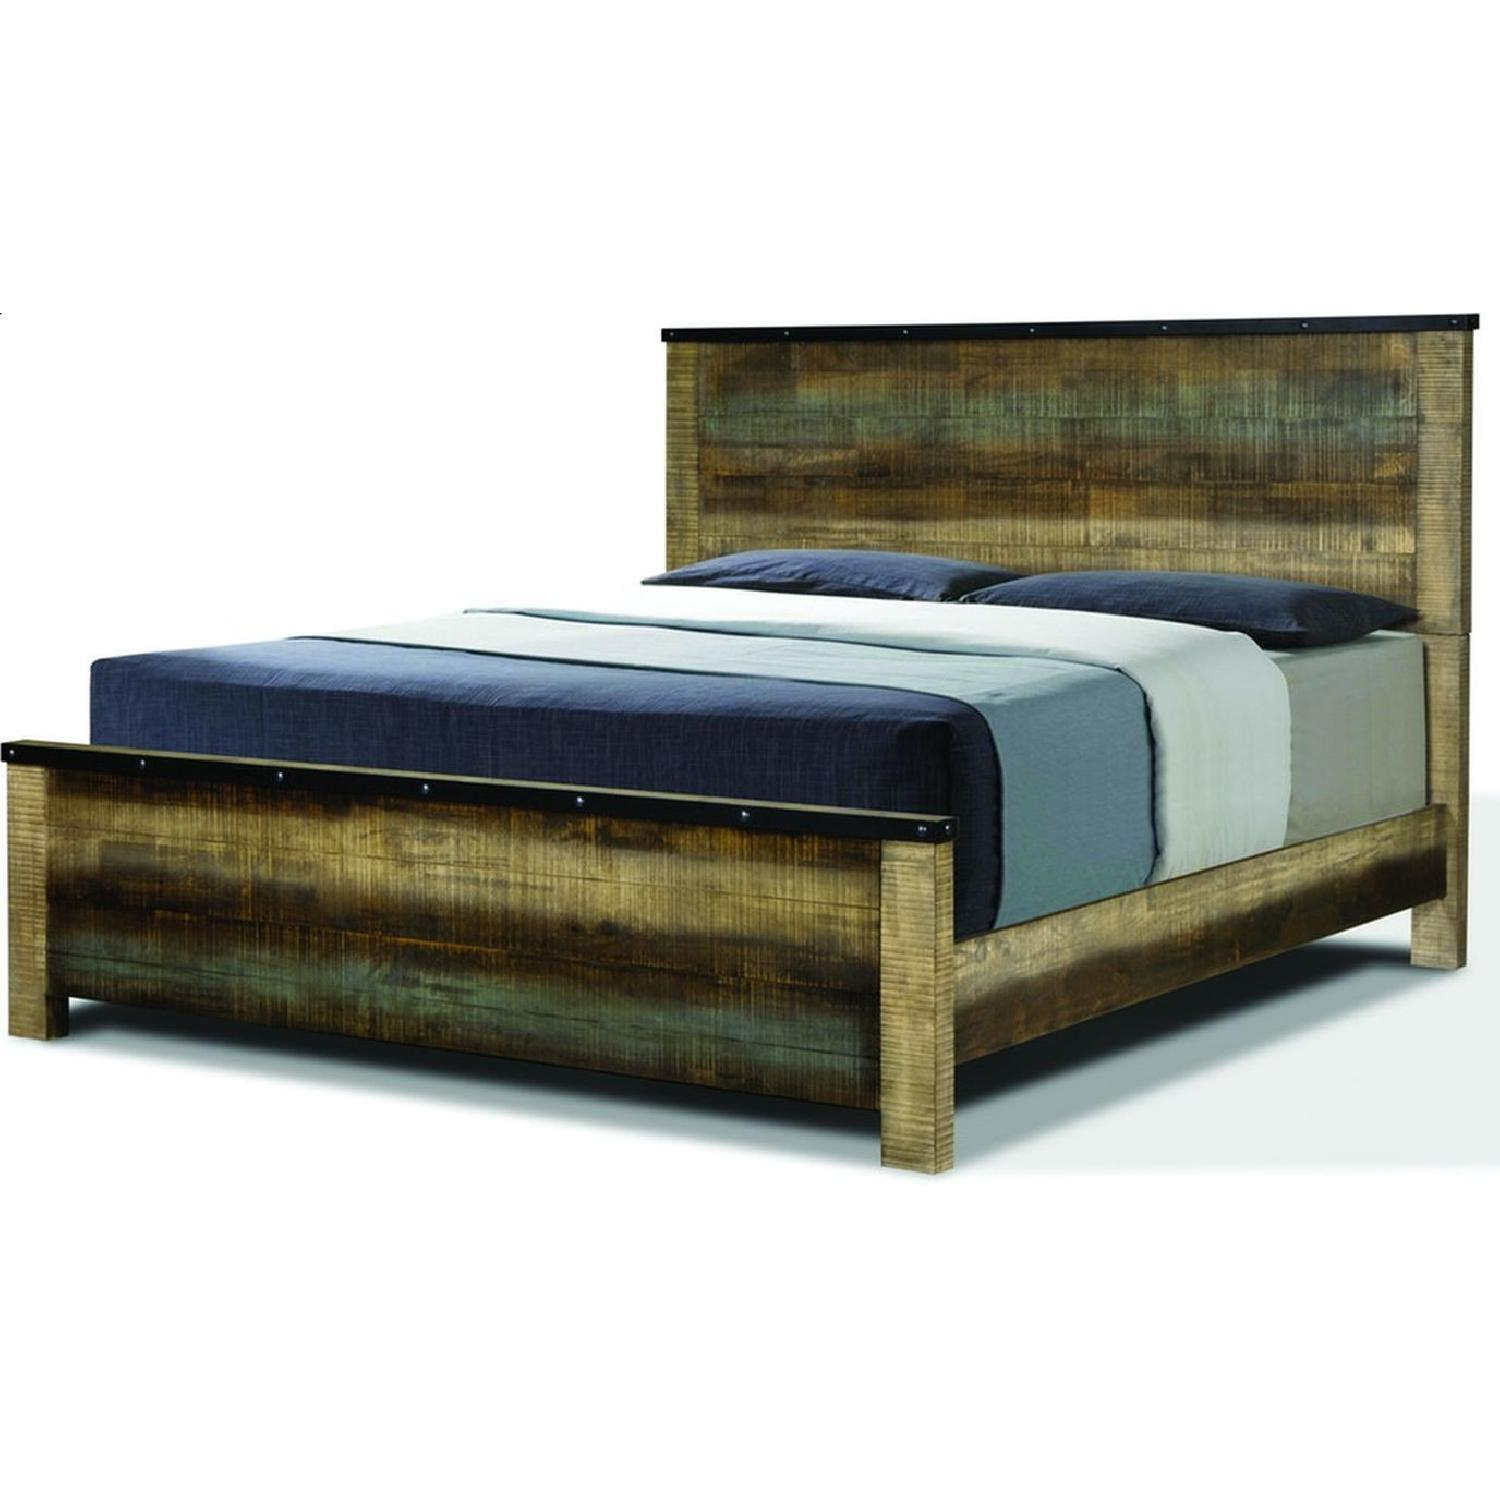 Rustic Style Queen Size Bed in Solid Wood Multi-Tonal Finish - image-2